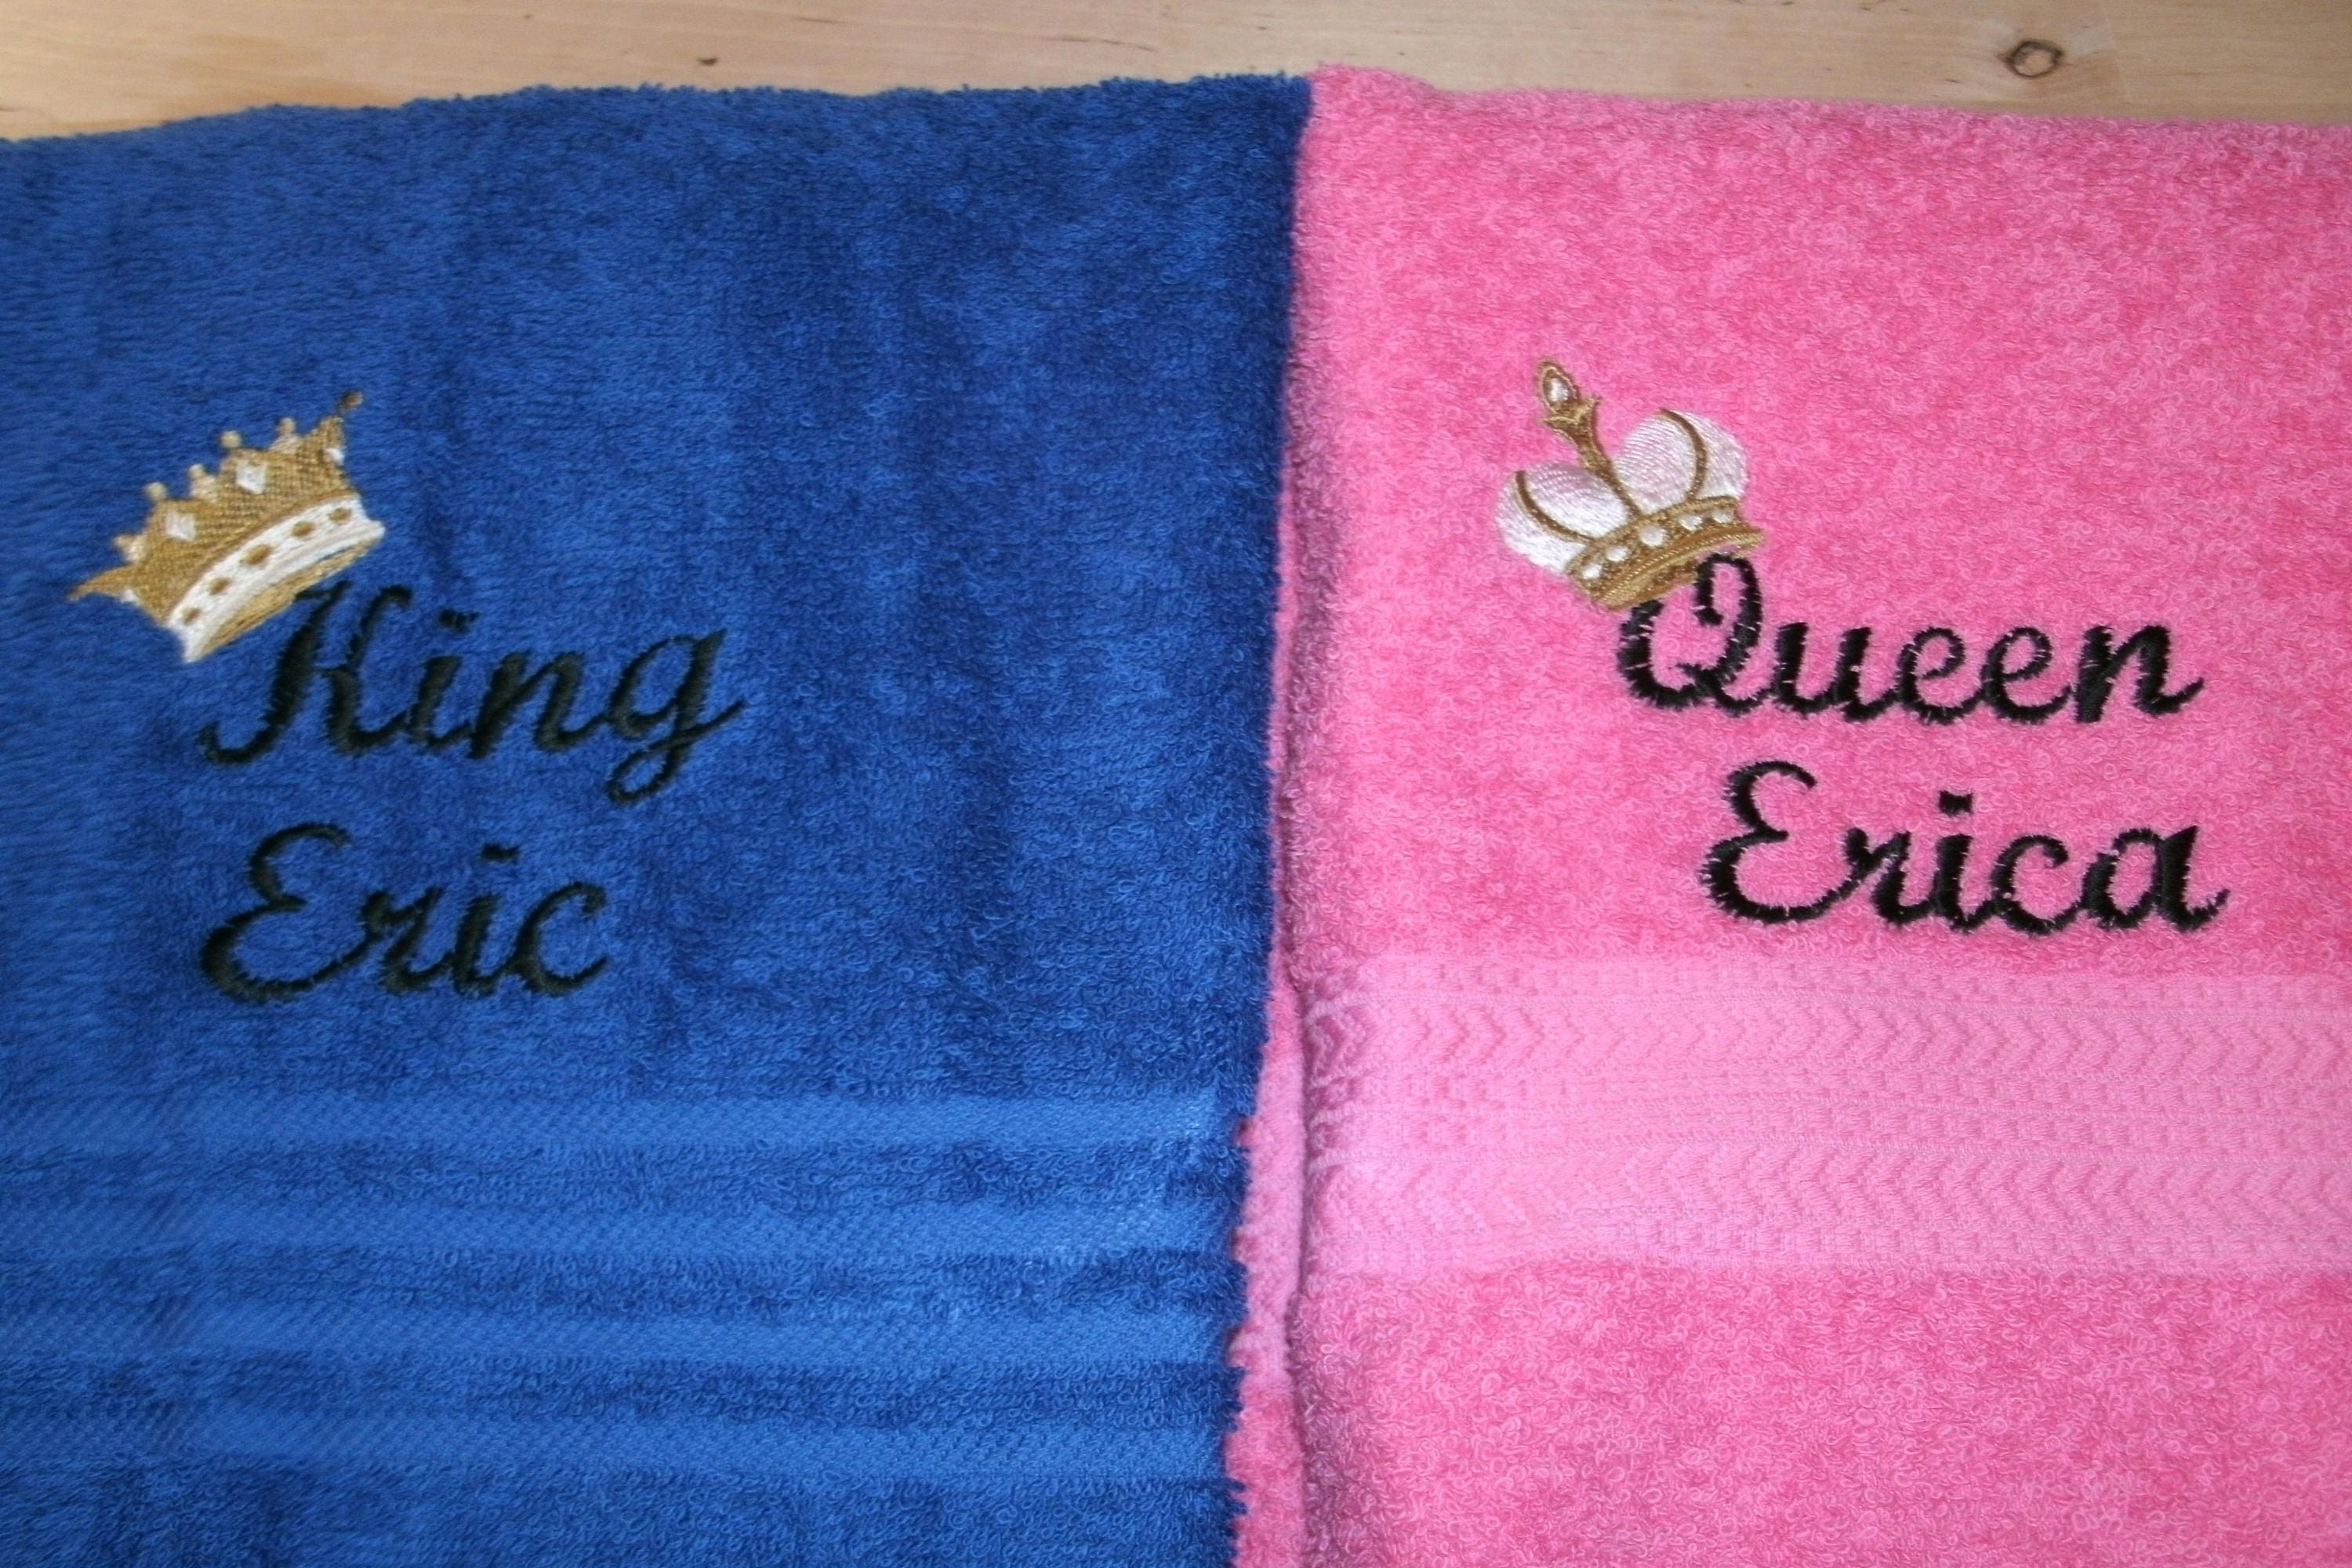 King and Queen Personalized His Hers Bath Towels Wedding Set